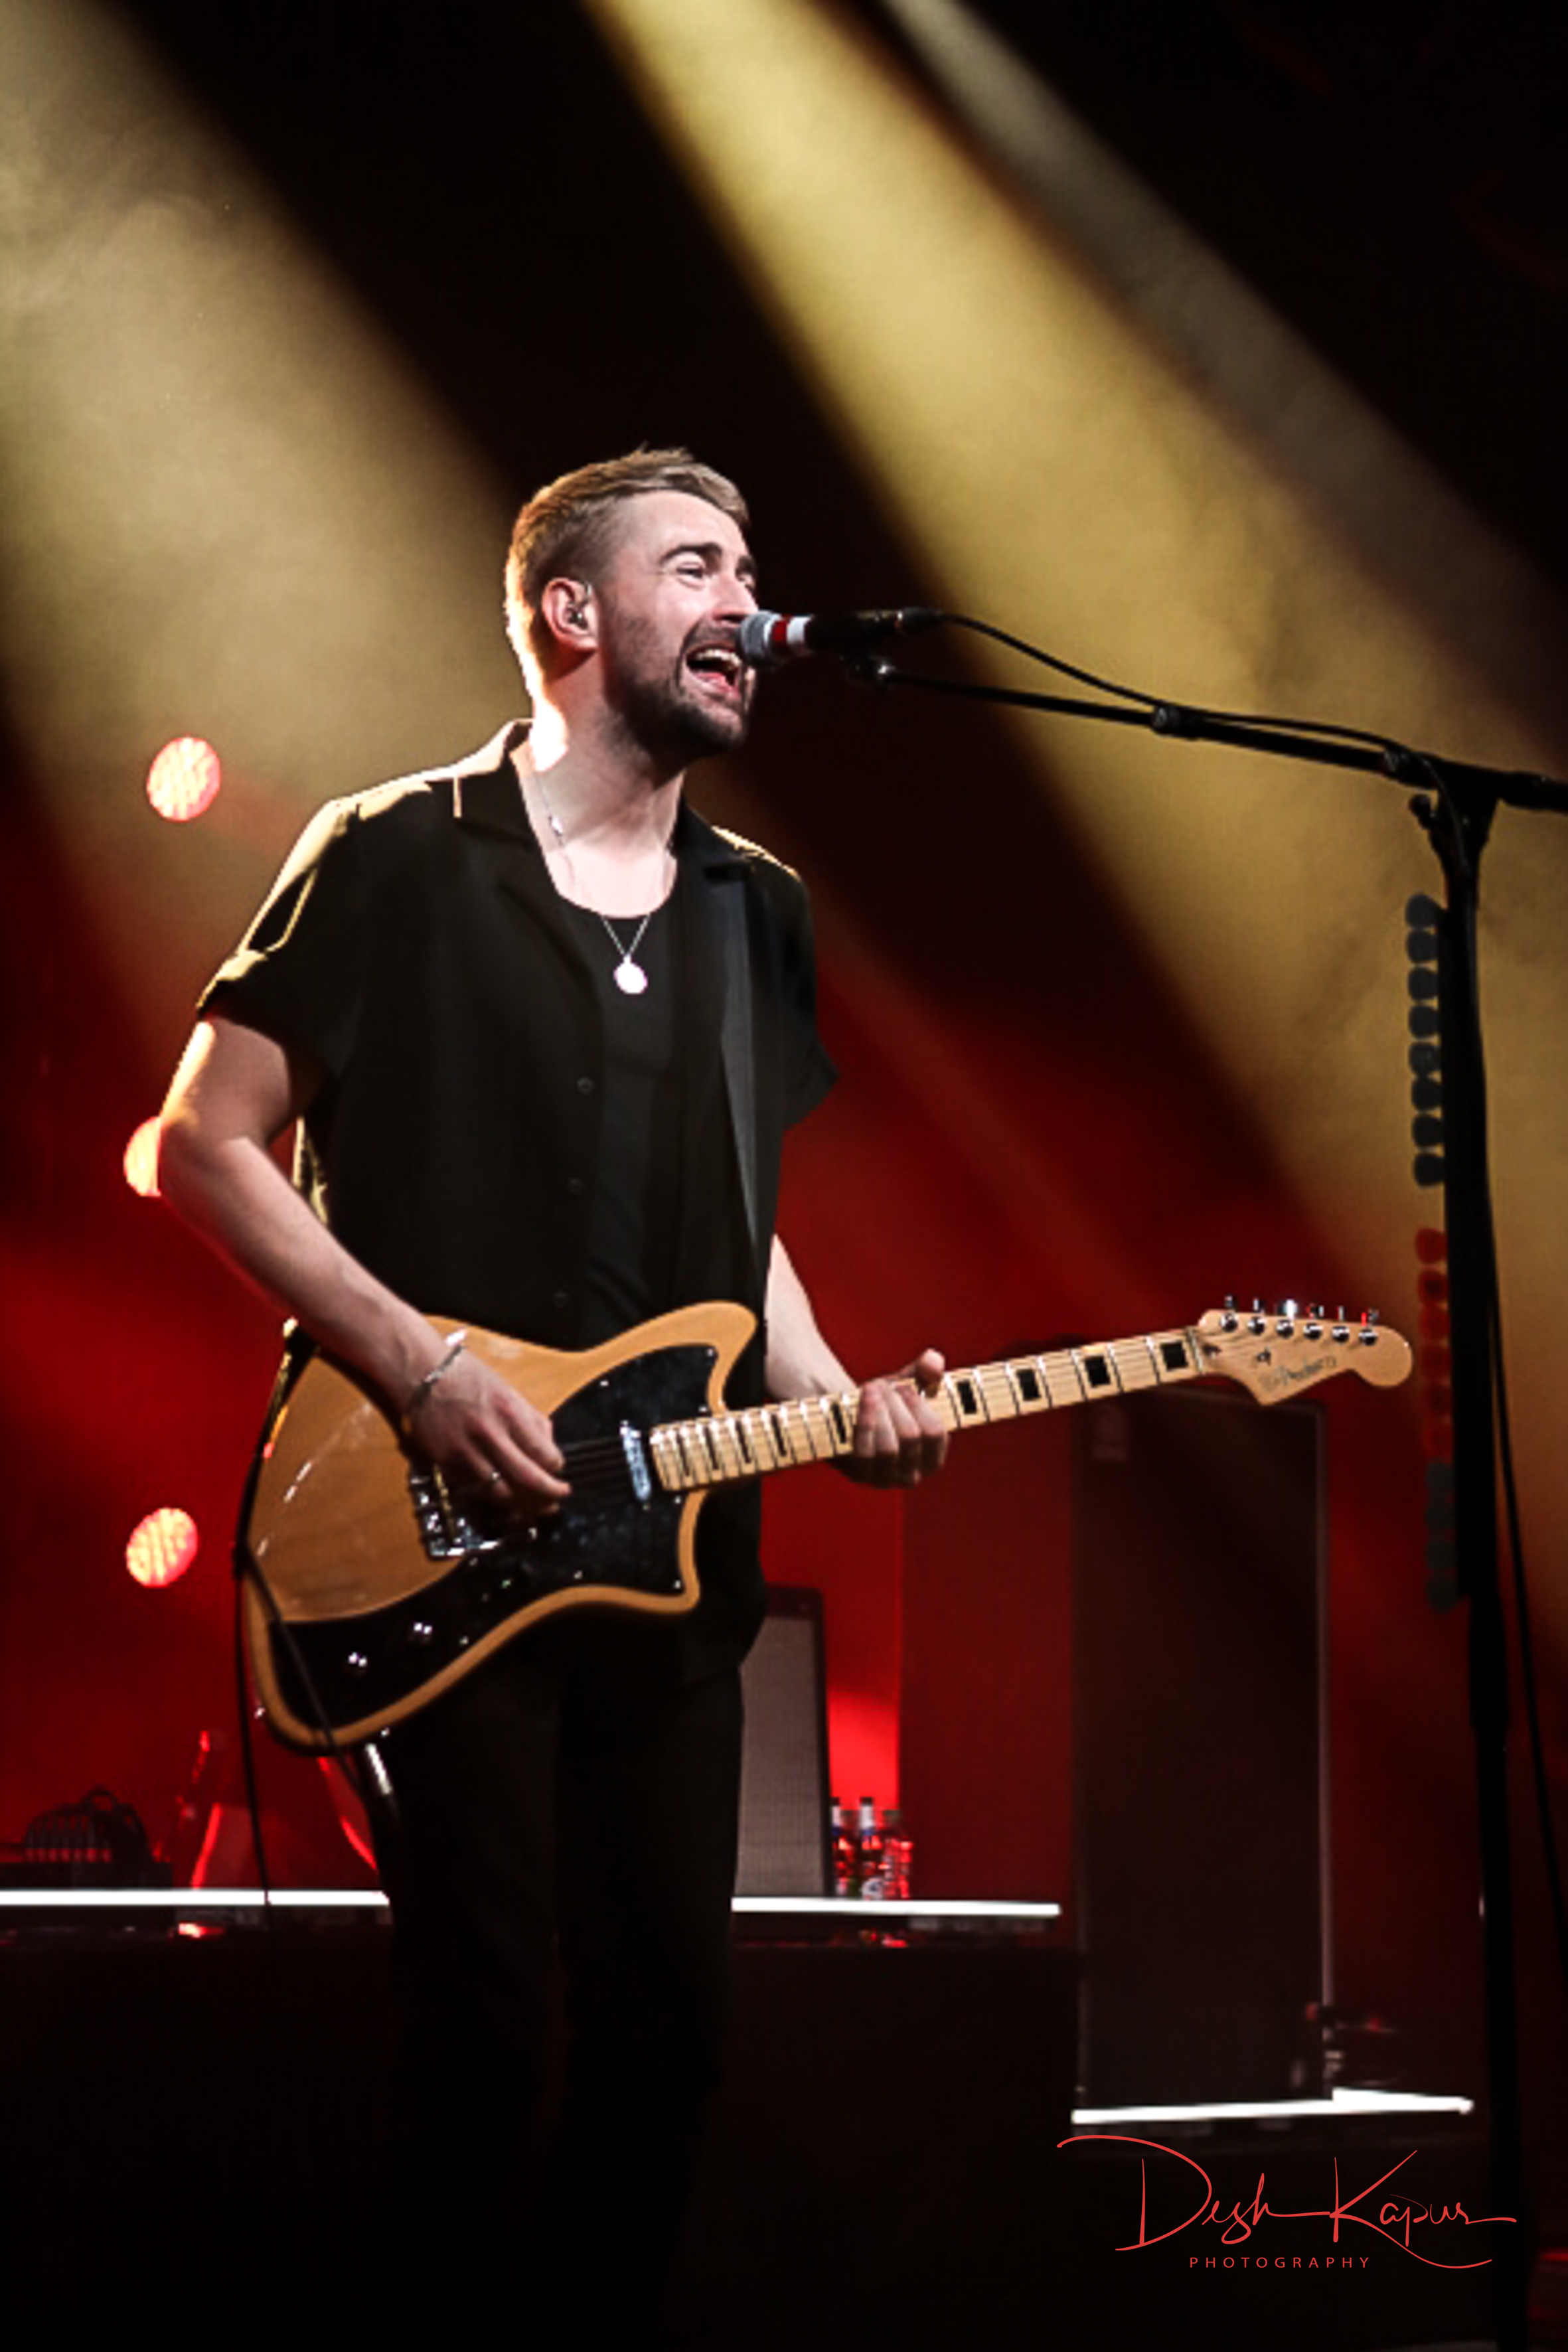 The Courteneers [Liam Fray]